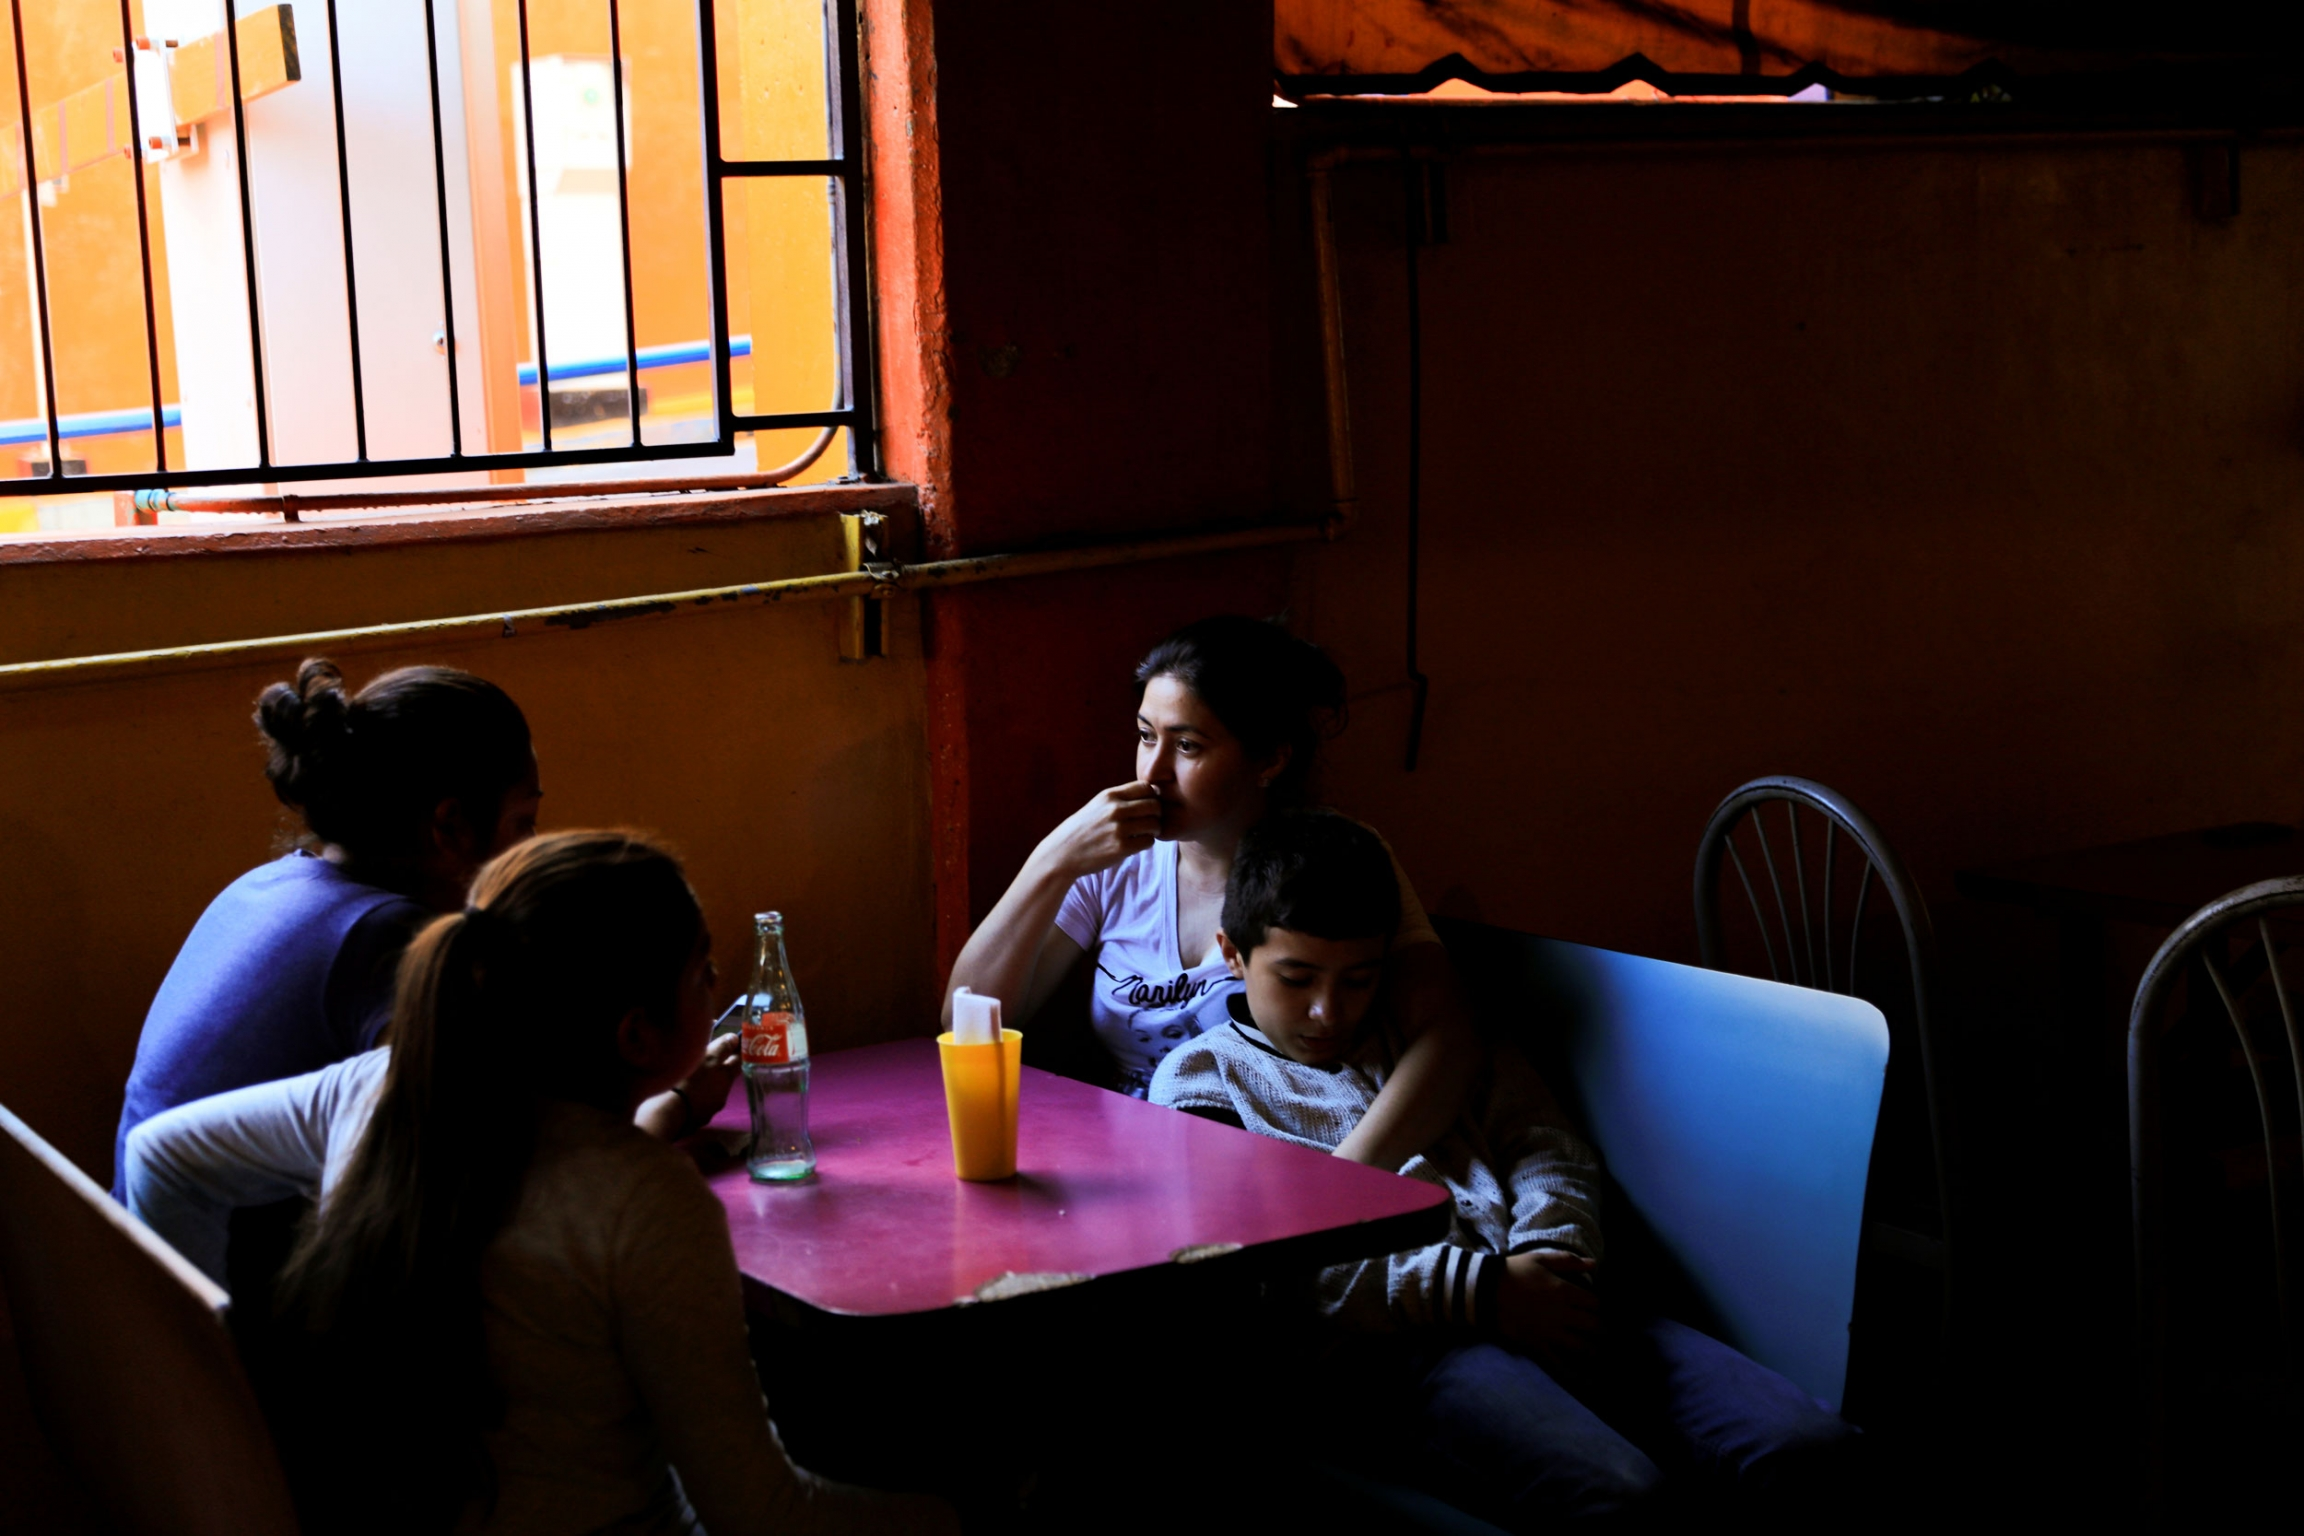 Three women are shown sitting around a table along with a teenage boy shown by the light of a window from above.